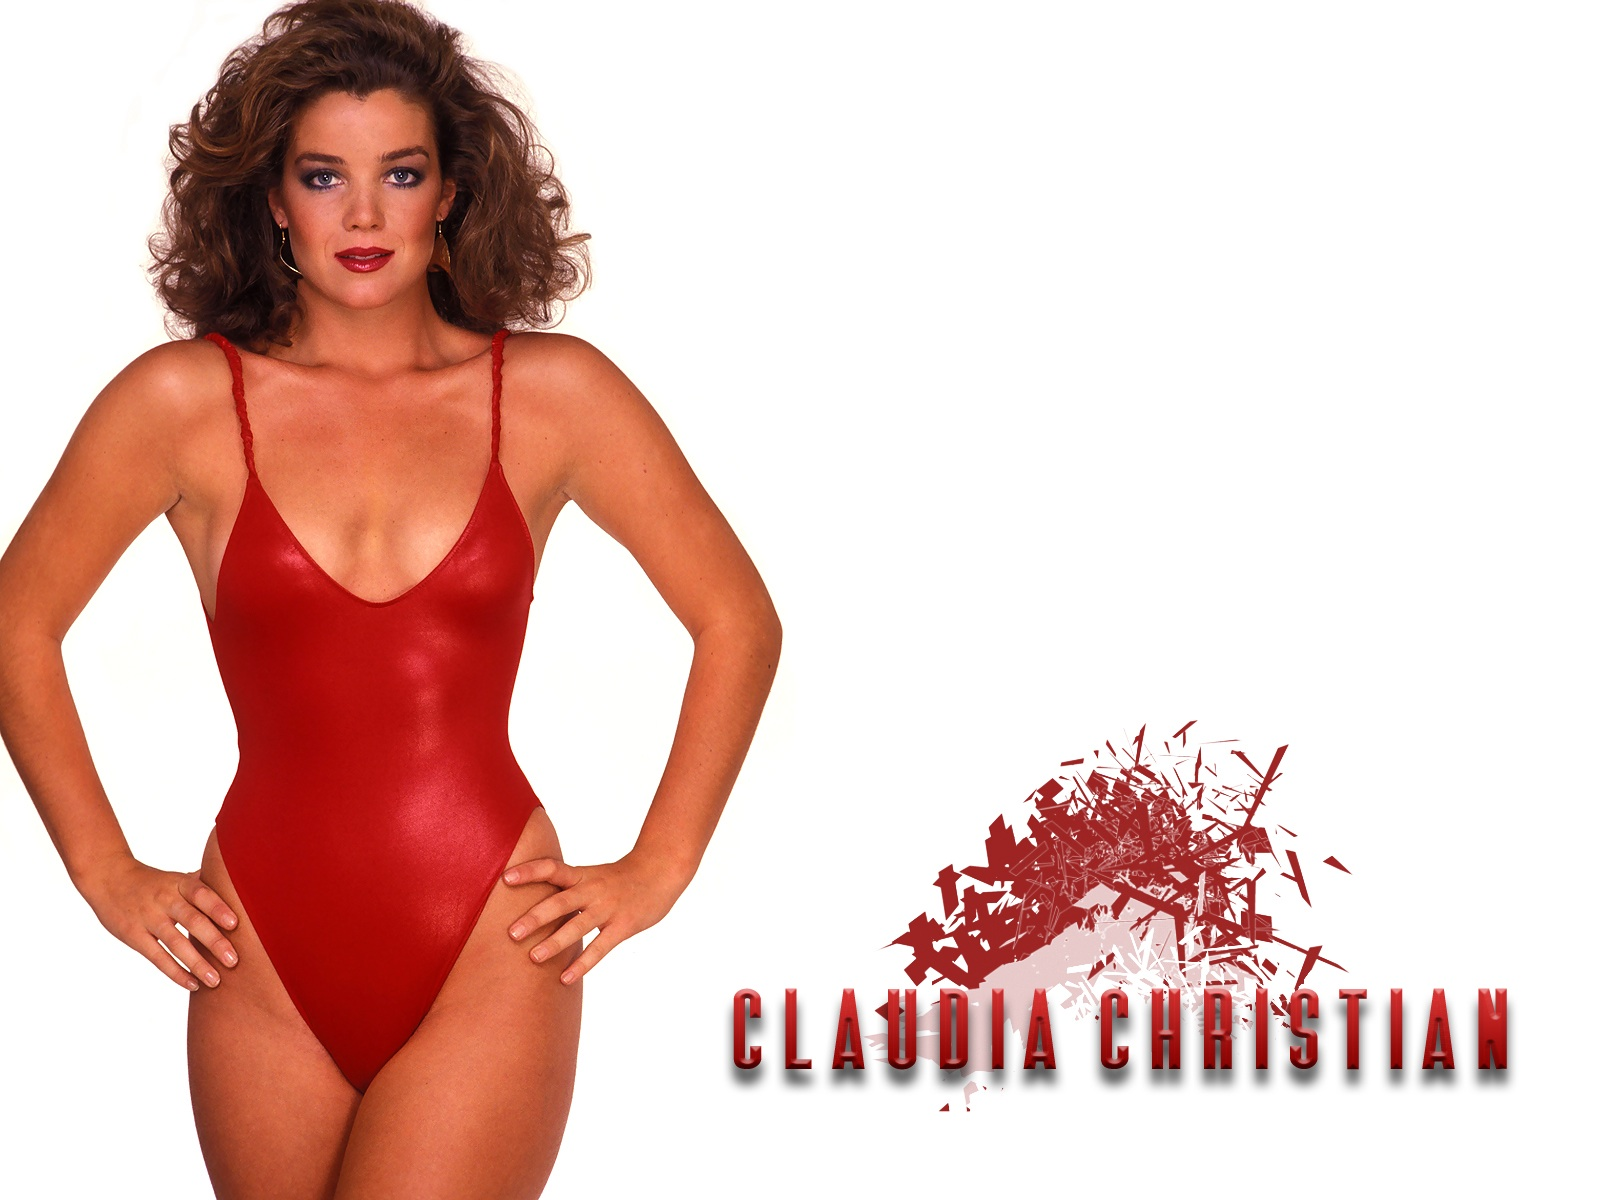 claudia christian wikiclaudia christian wiki, claudia christian skyrim, claudia christian imdb, claudia christian height, claudia christian twitter, claudia christian instagram, claudia christian filmography, claudia christian, claudia christian 2015, claudia christian facebook, claudia christian playboy october 1999, claudia christian hall